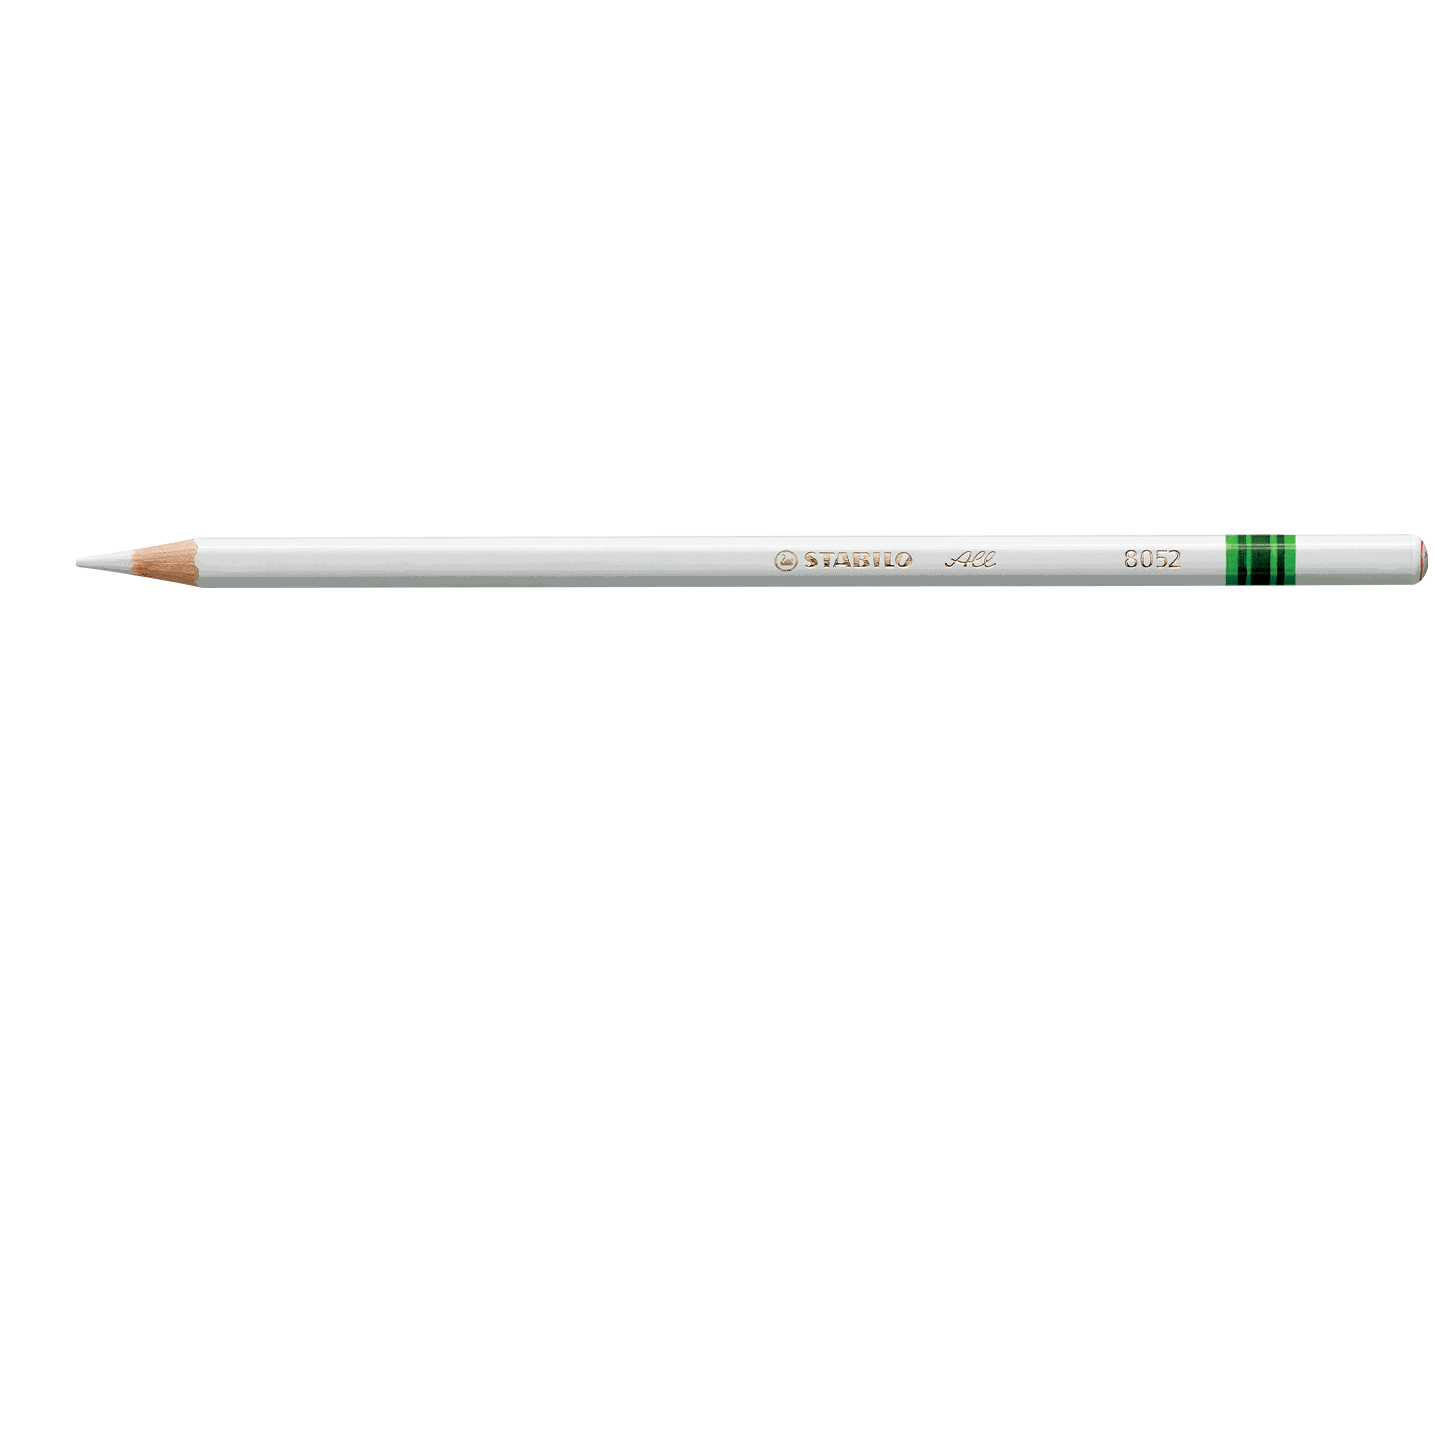 Pencil, Most Surfaces, All White, Single